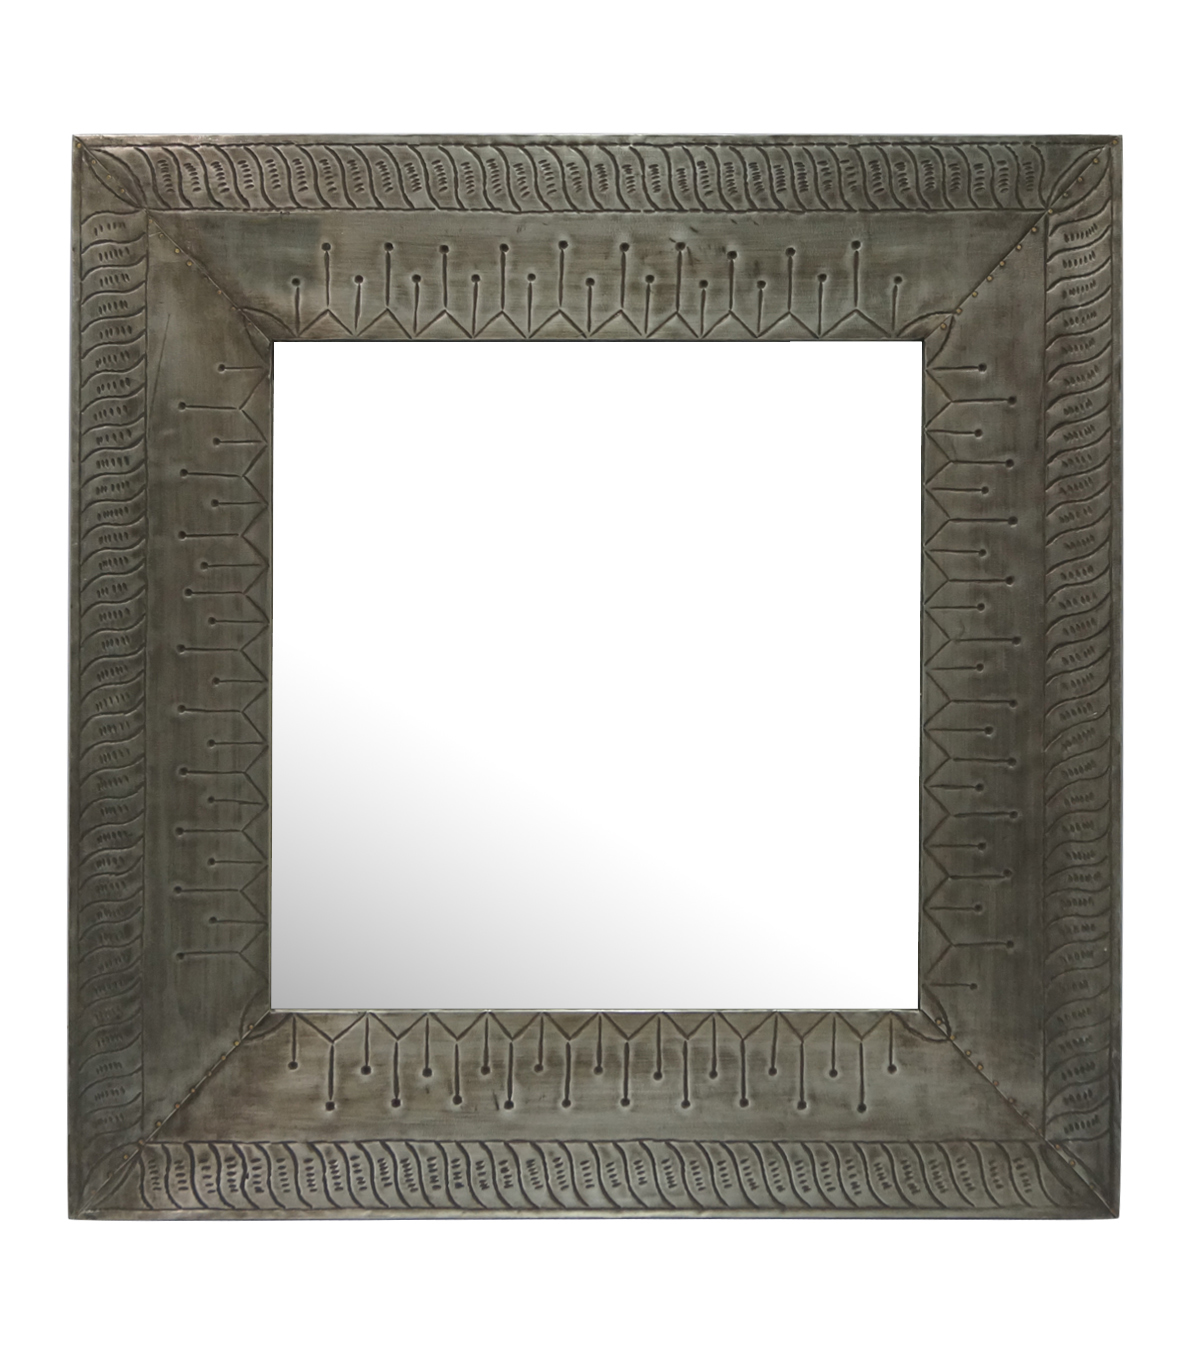 Idea Market Hand-Done Antique Zinc Metal Cladded Mirror